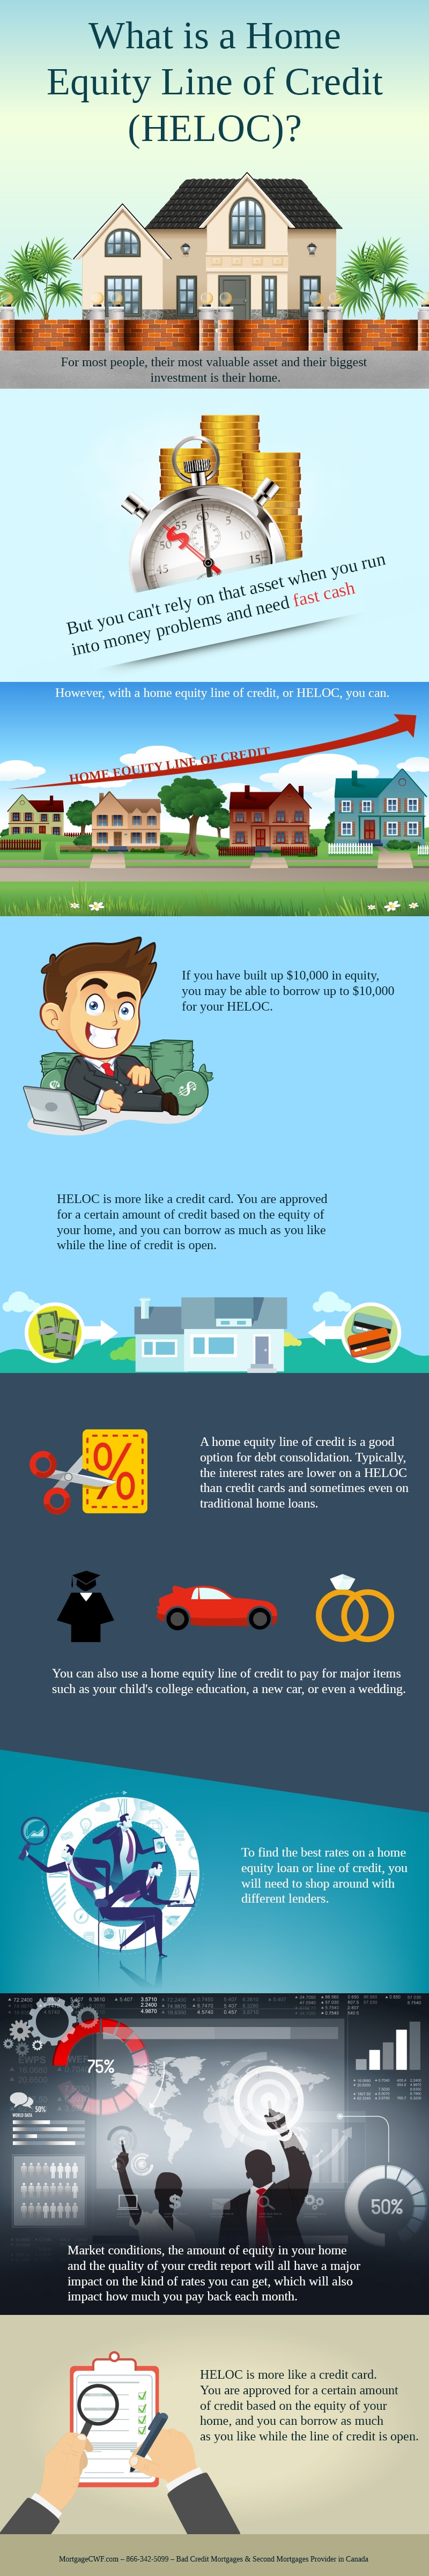 What is a Home Equity Line of Credit - Infographic